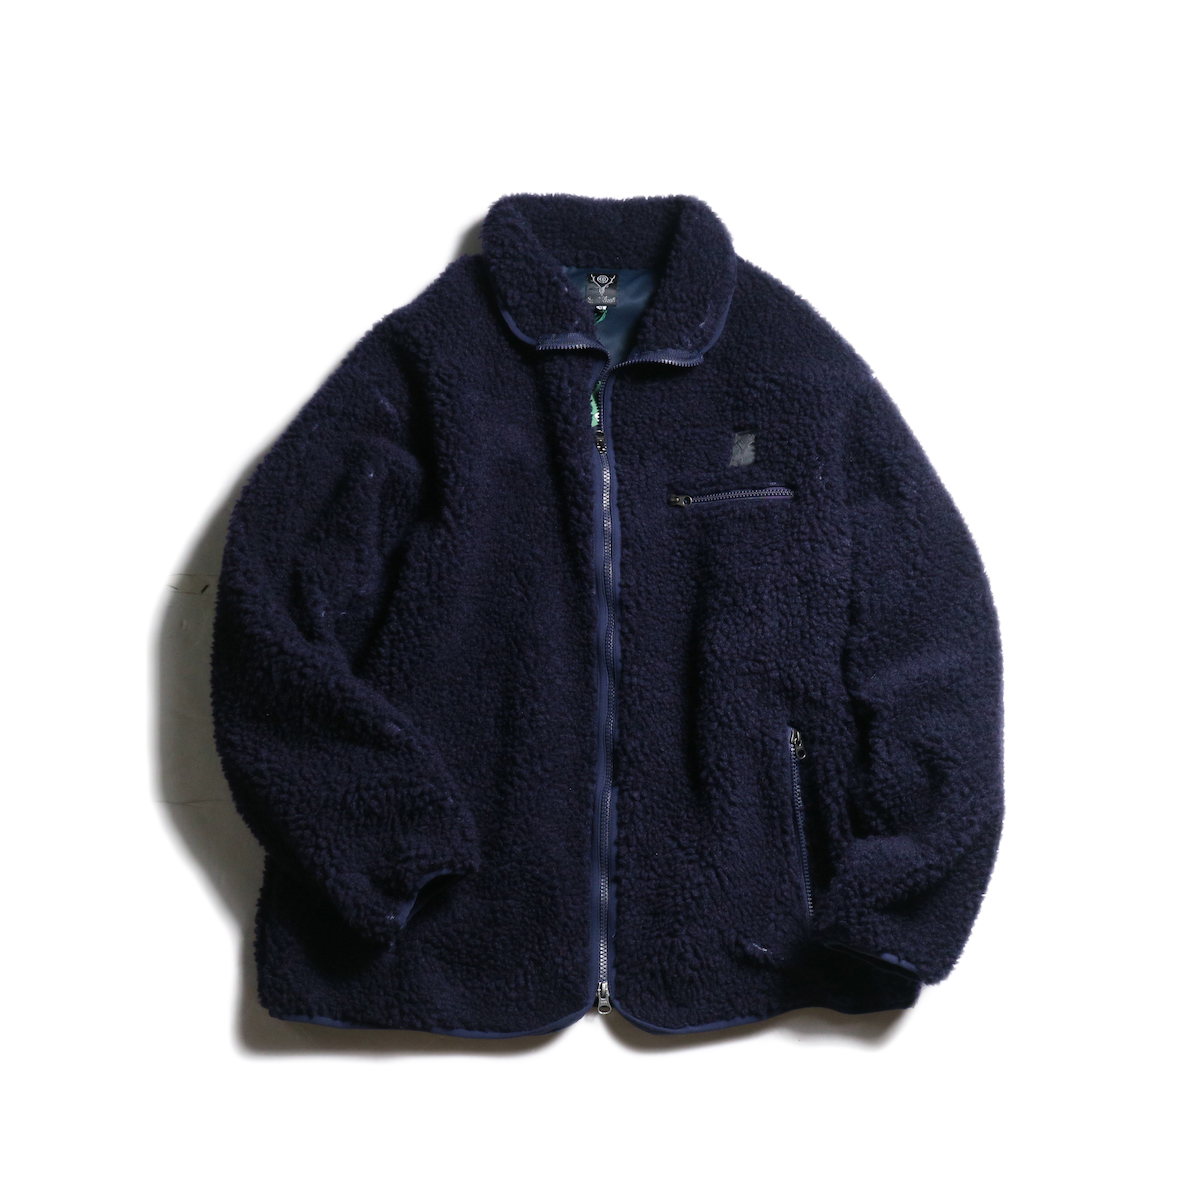 SOUTH2 WEST8 / Piping Jacket -Synthetic Pile (Navy)